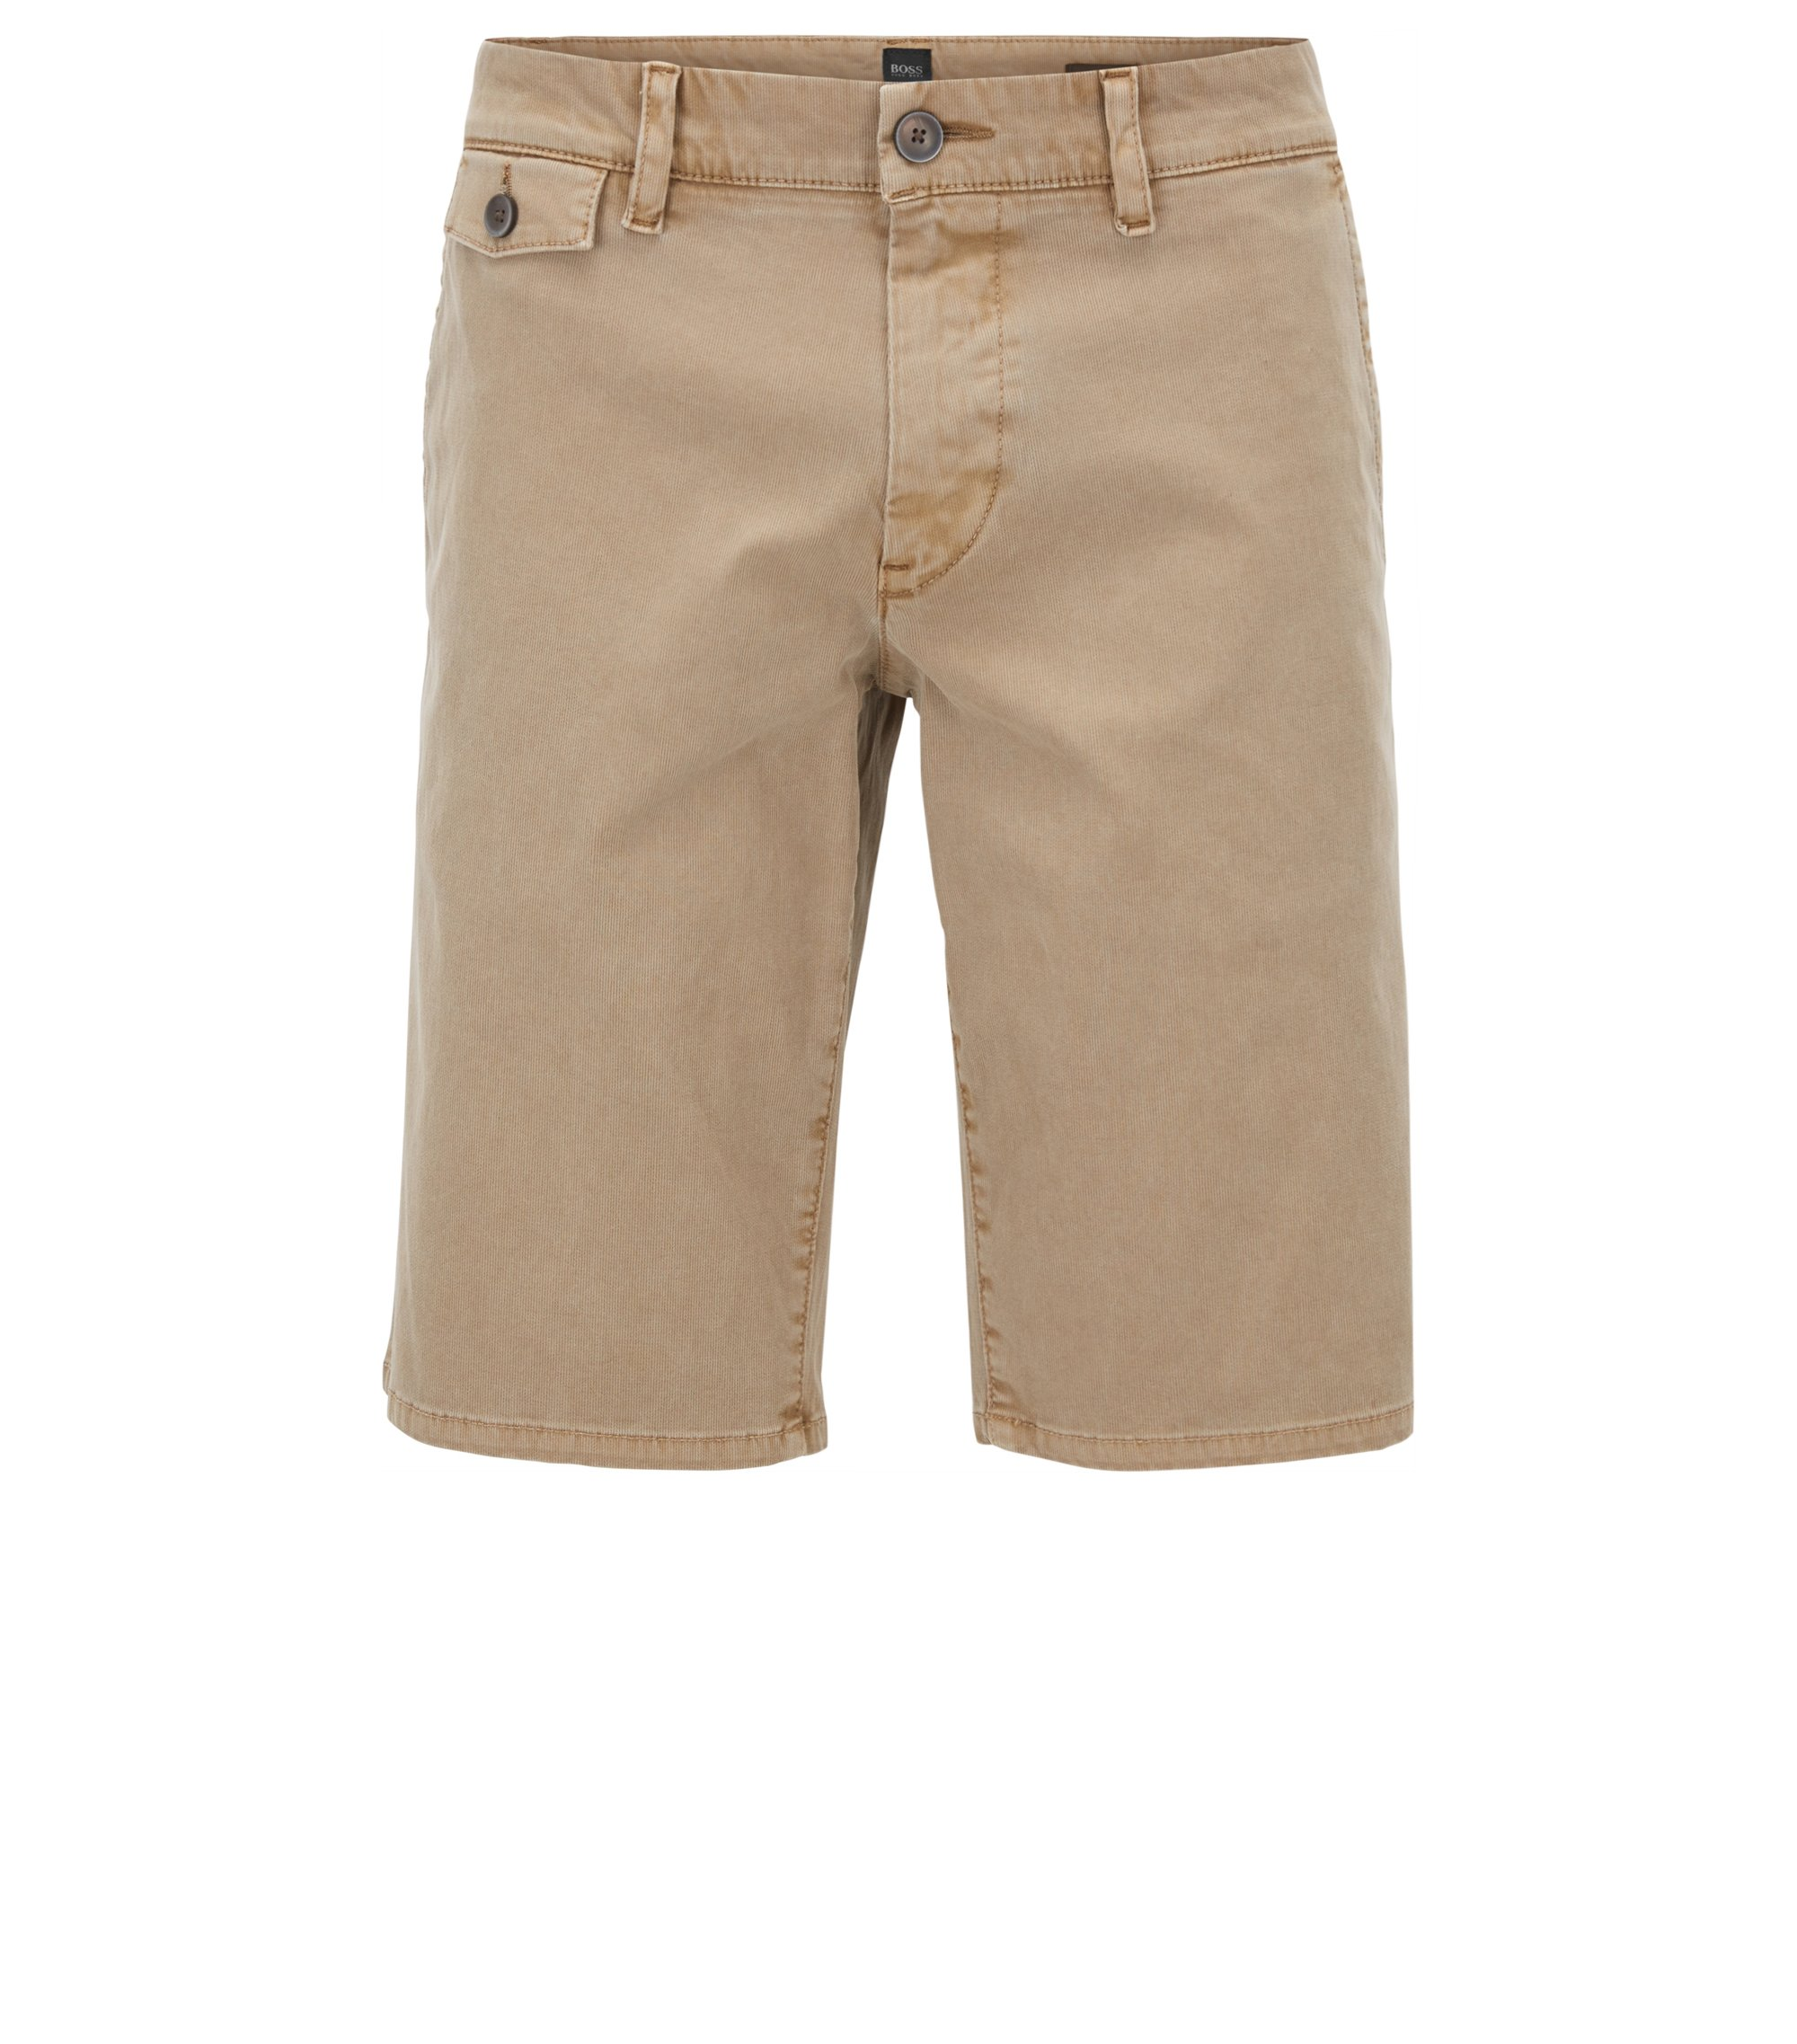 Shorts regular fit en pana Bedford de algodón, Beige